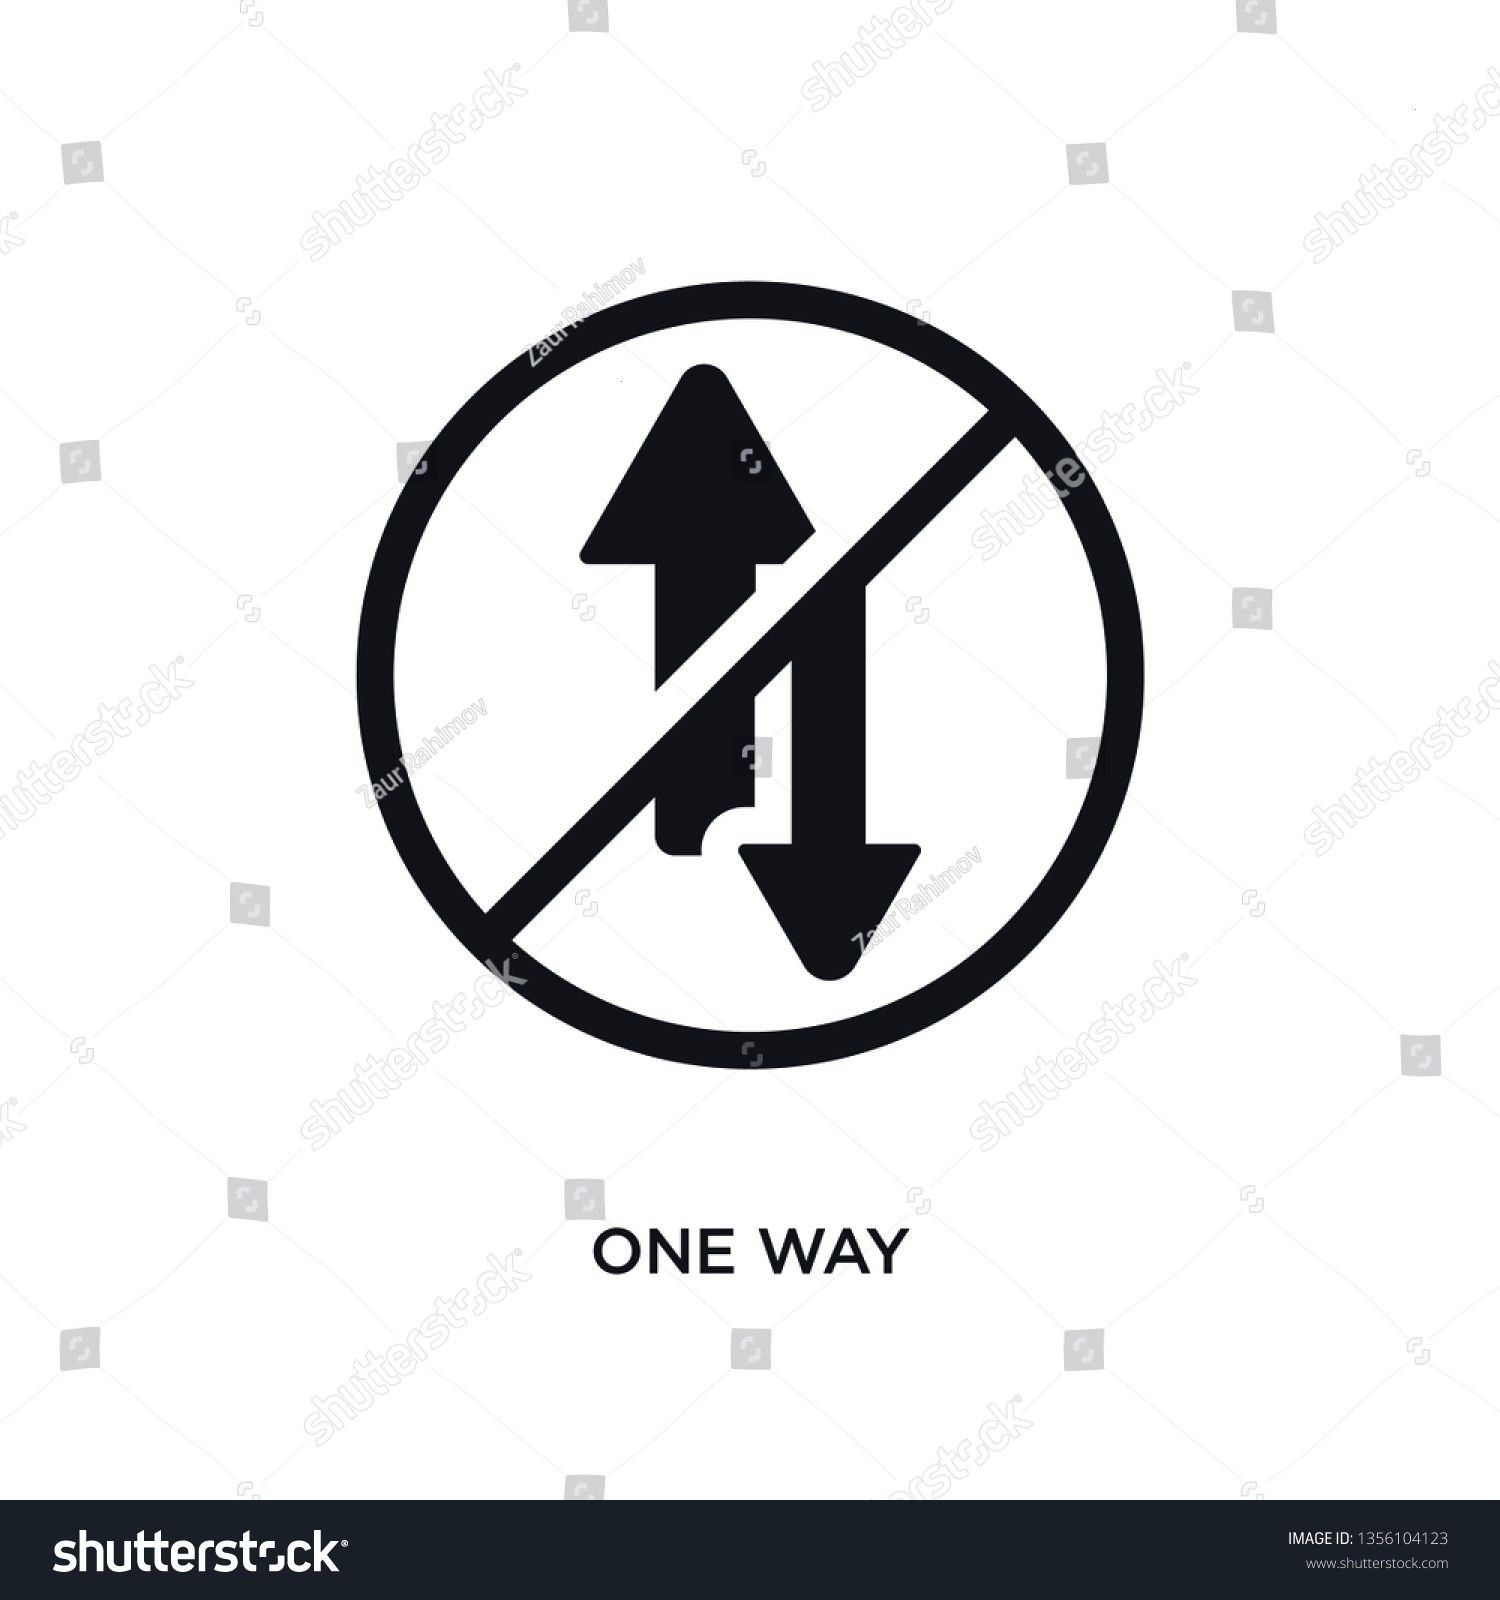 one way isolated vector icon simple element illustration from traffic signs concept vector icons one way editable logo symbol design on white background can be use for we...